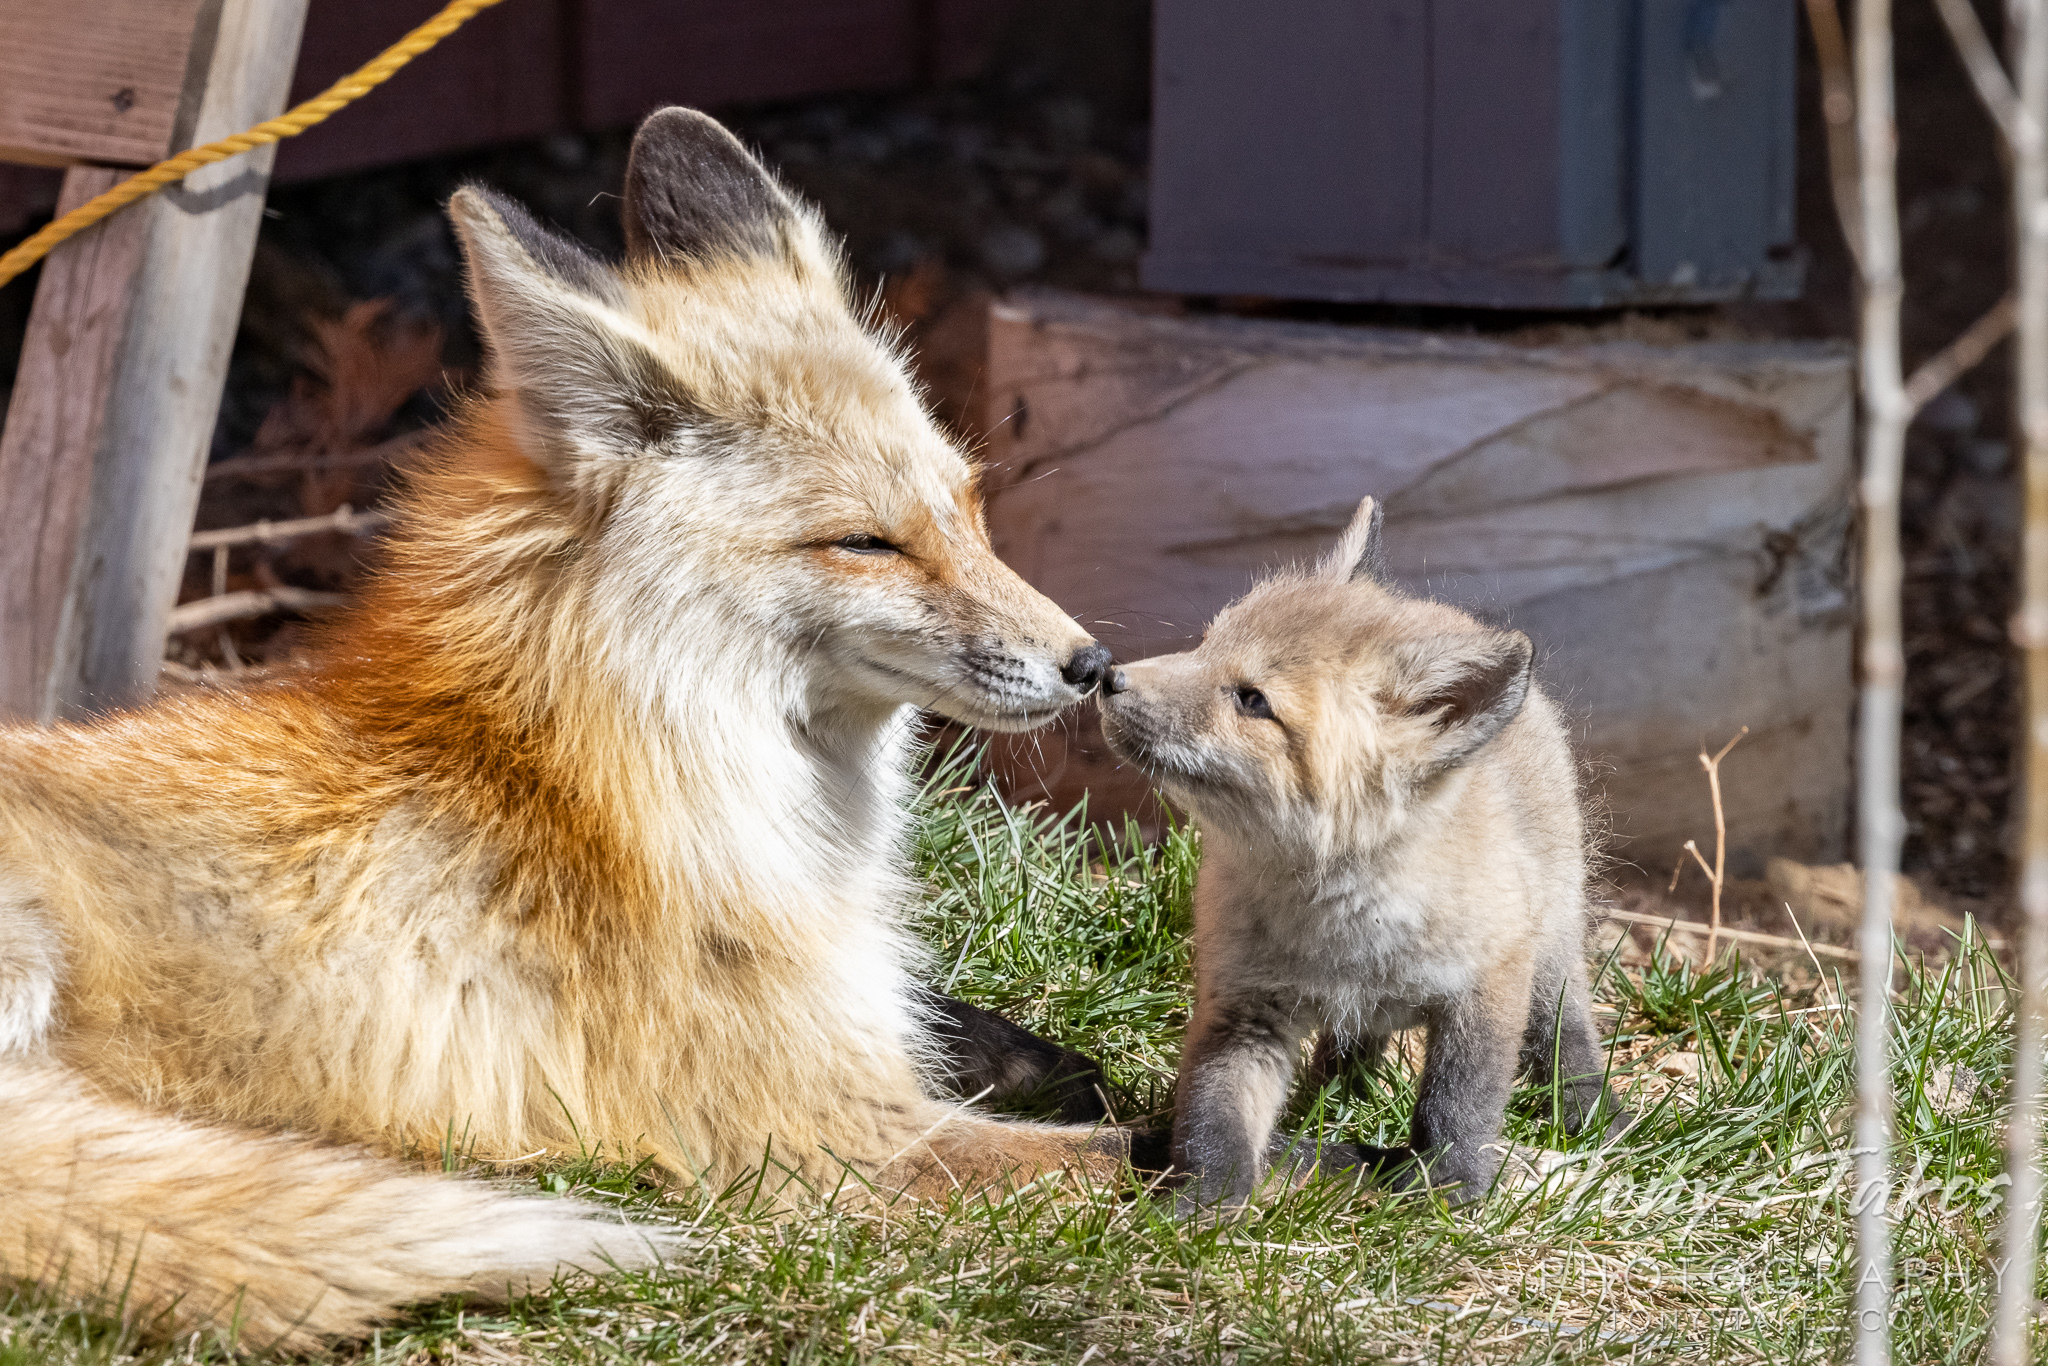 Fox kit and its dad go nose to nose